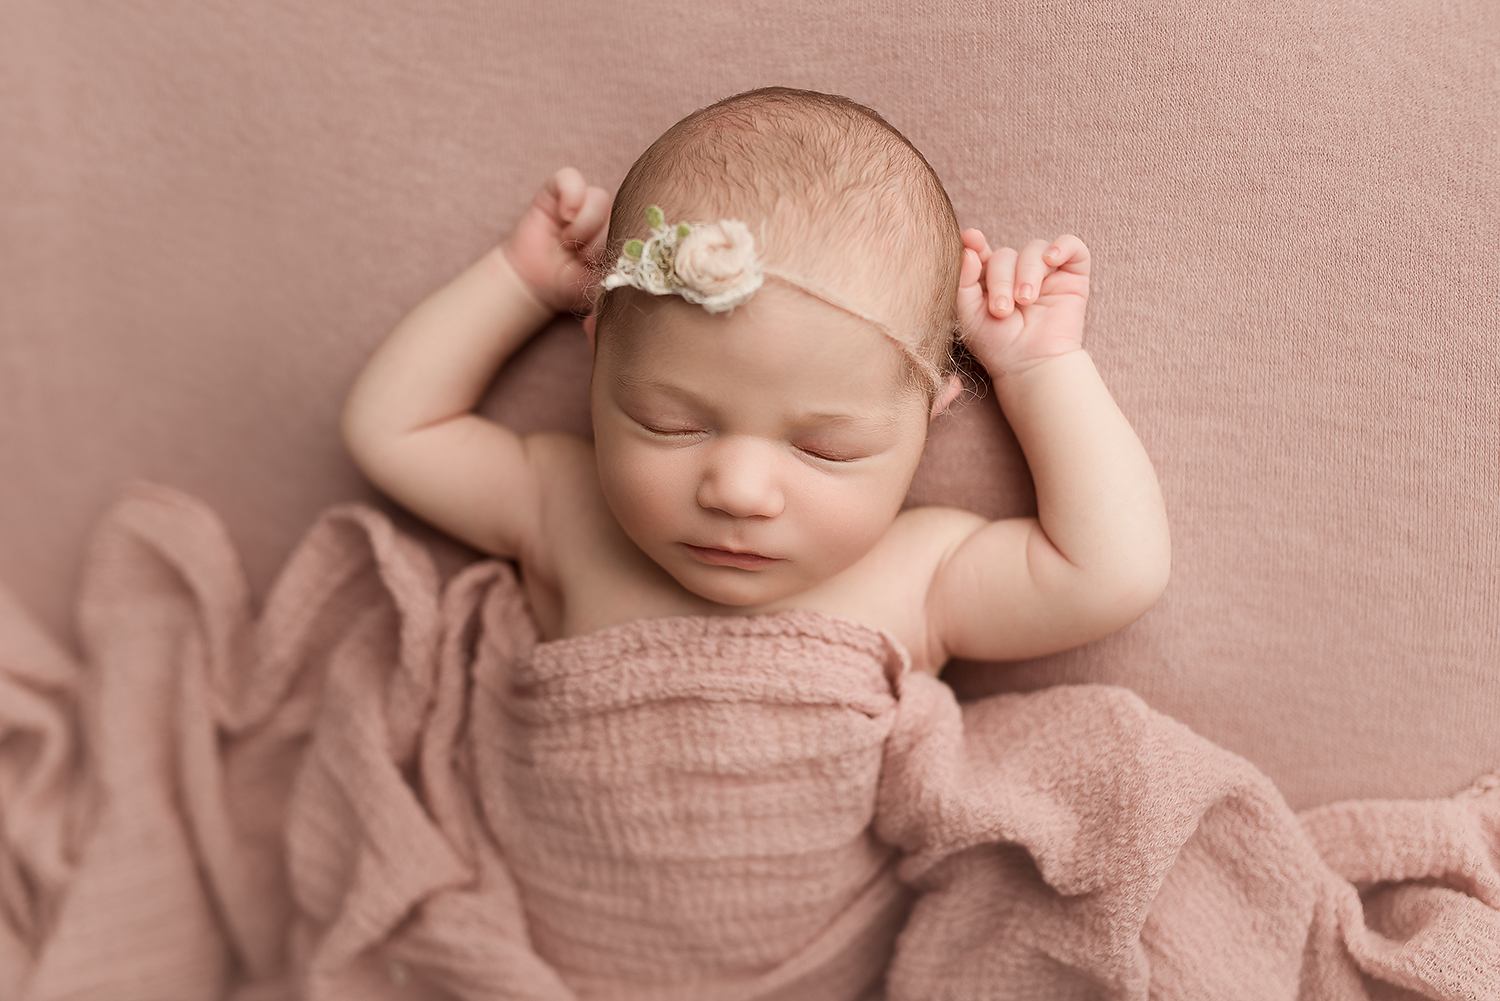 Jessica Fenfert Baltimore Maryland Newborn Photographer pink